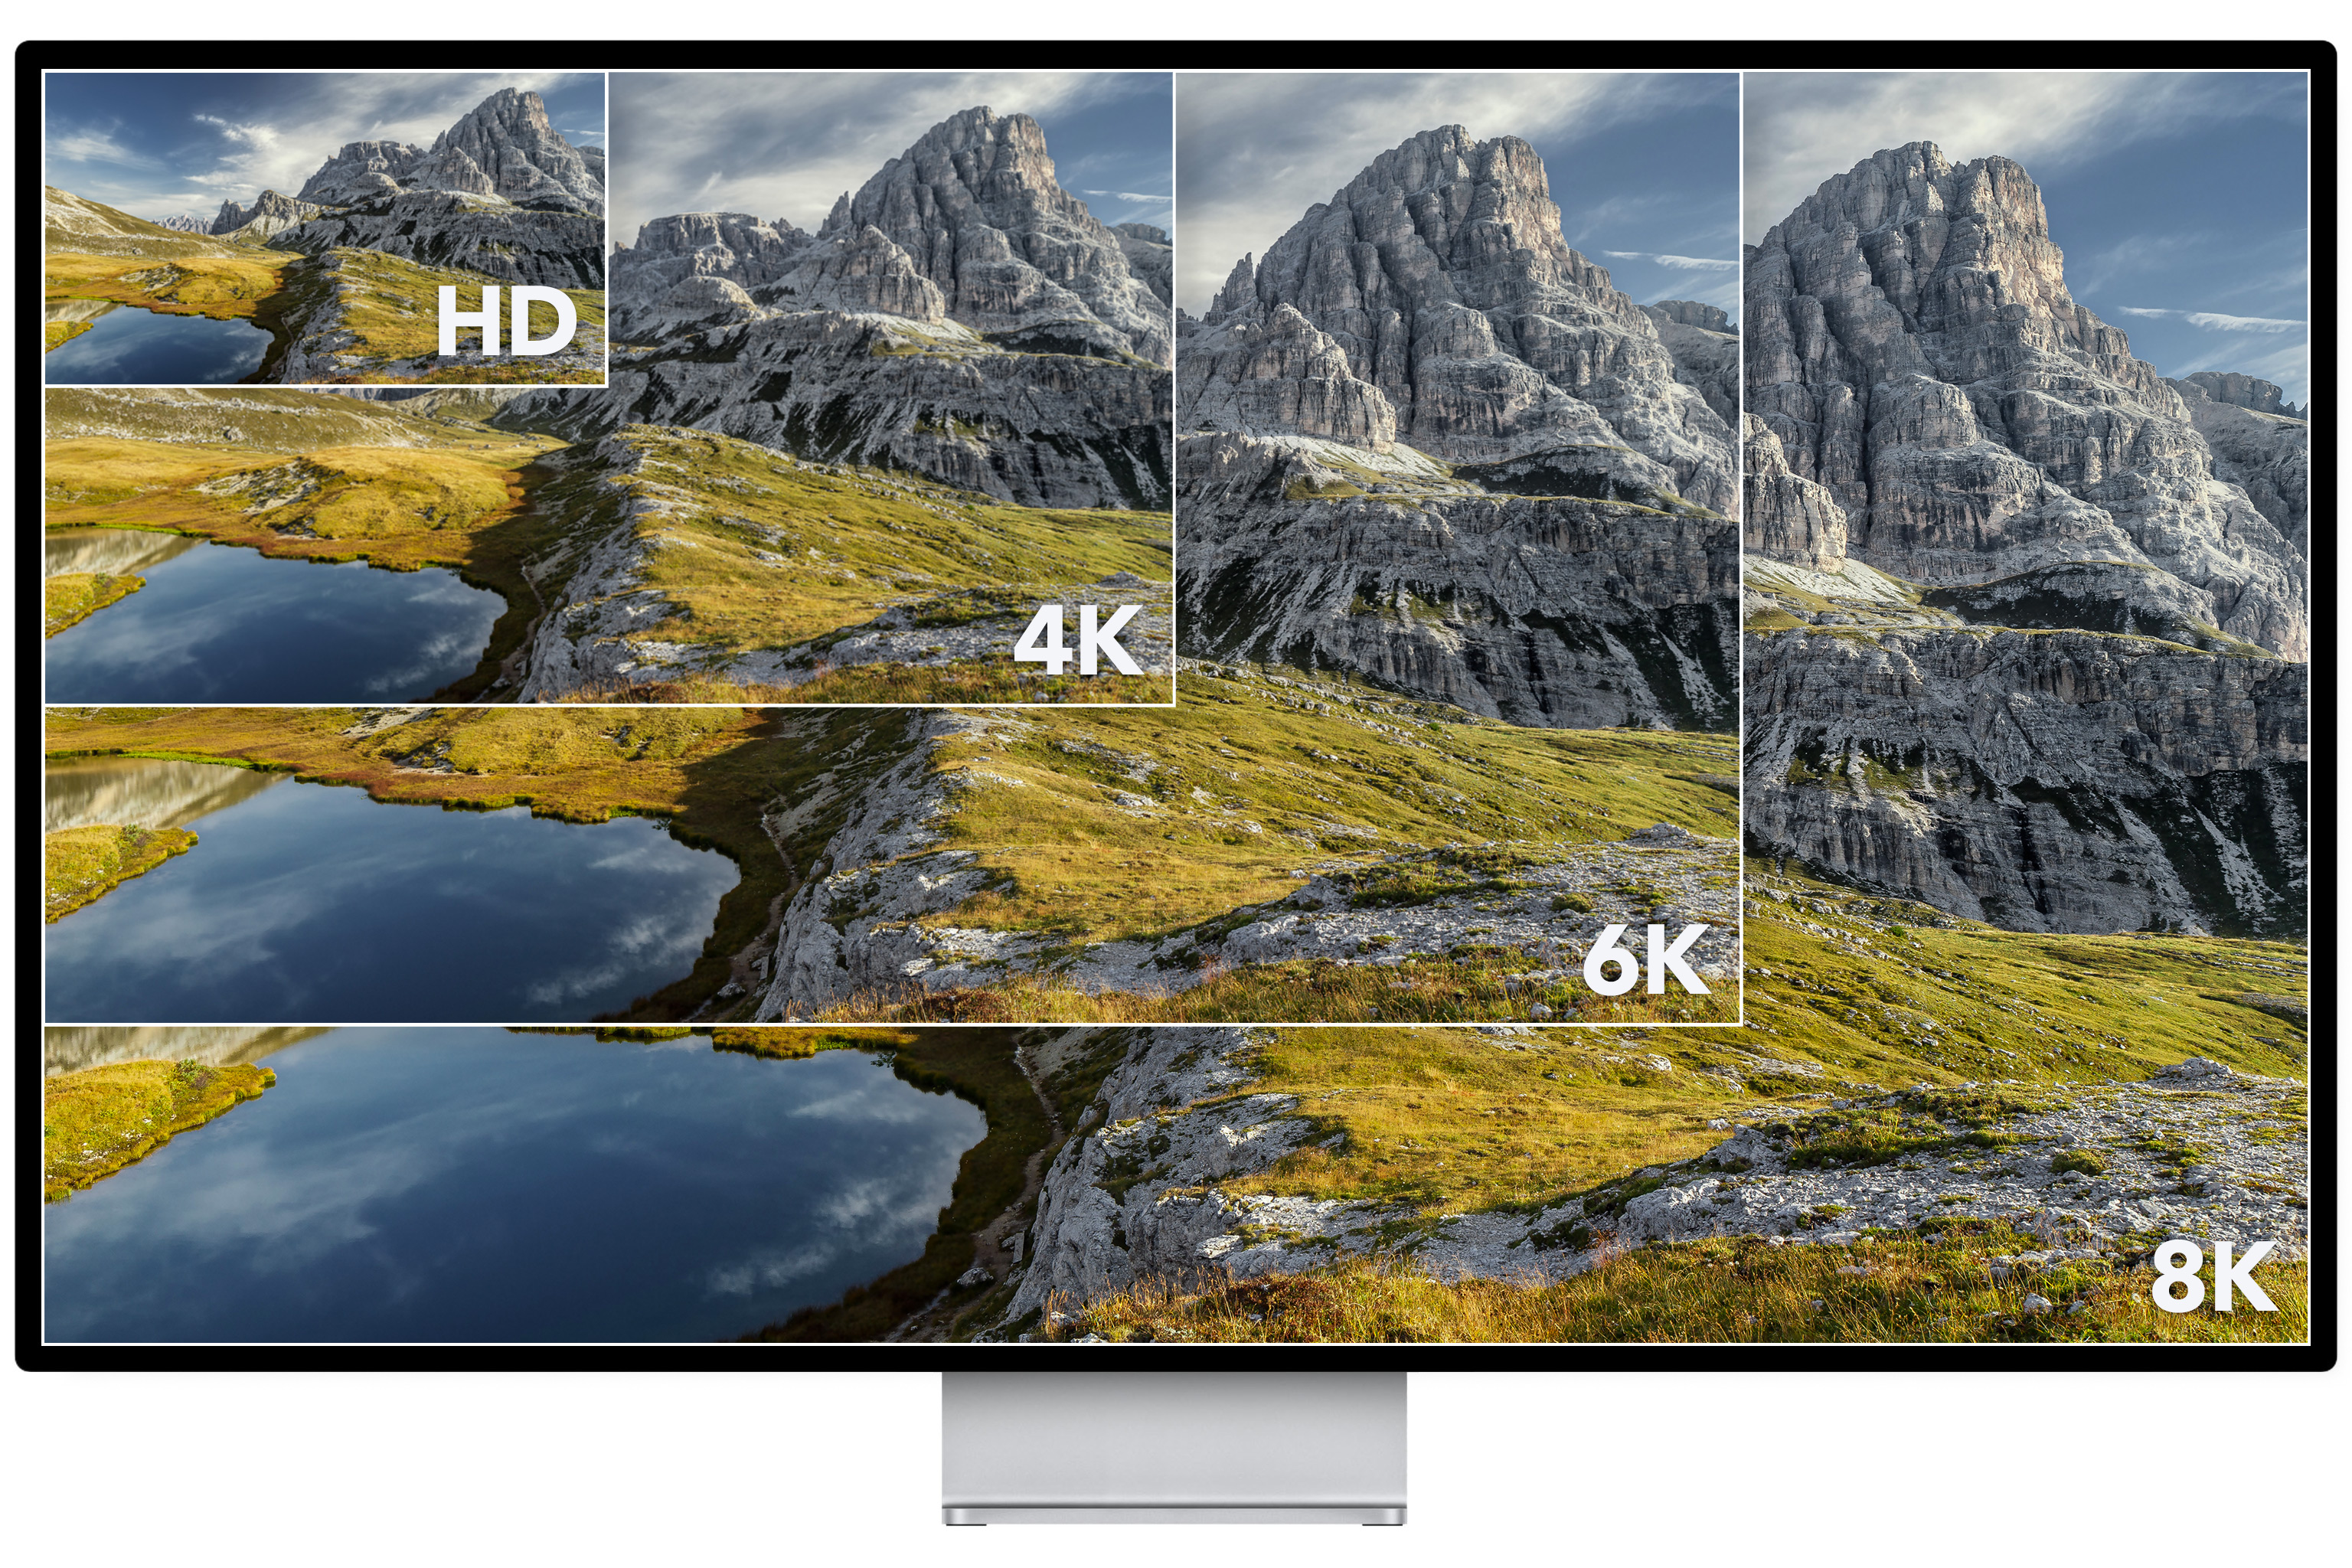 8K Support and Comparison